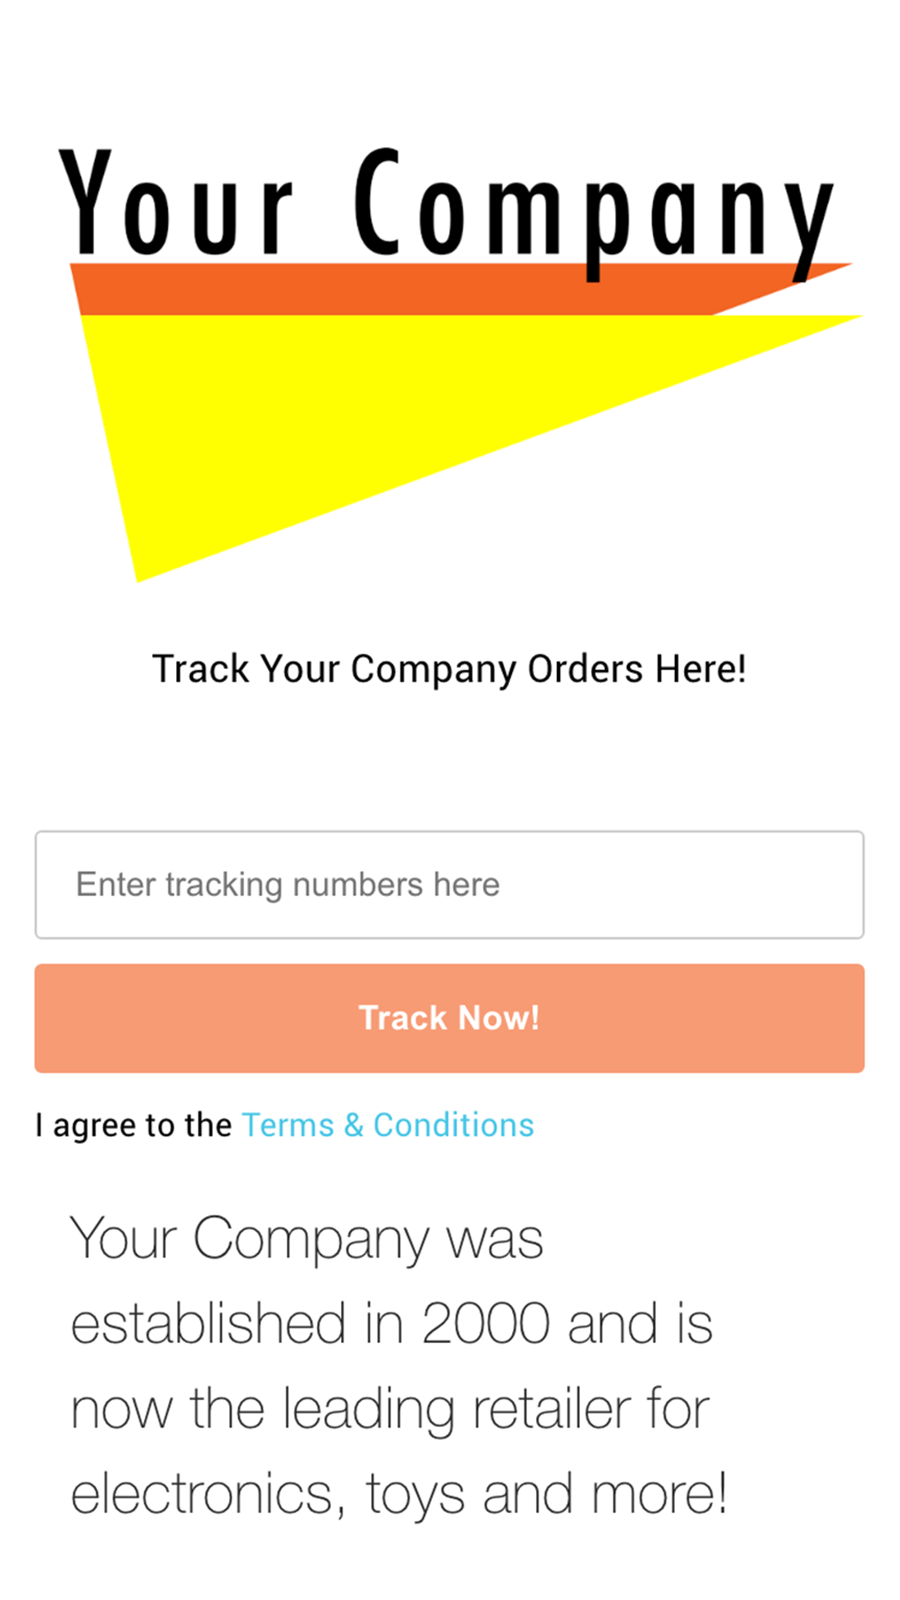 Fully branded tracking experience for customers with a mobile we